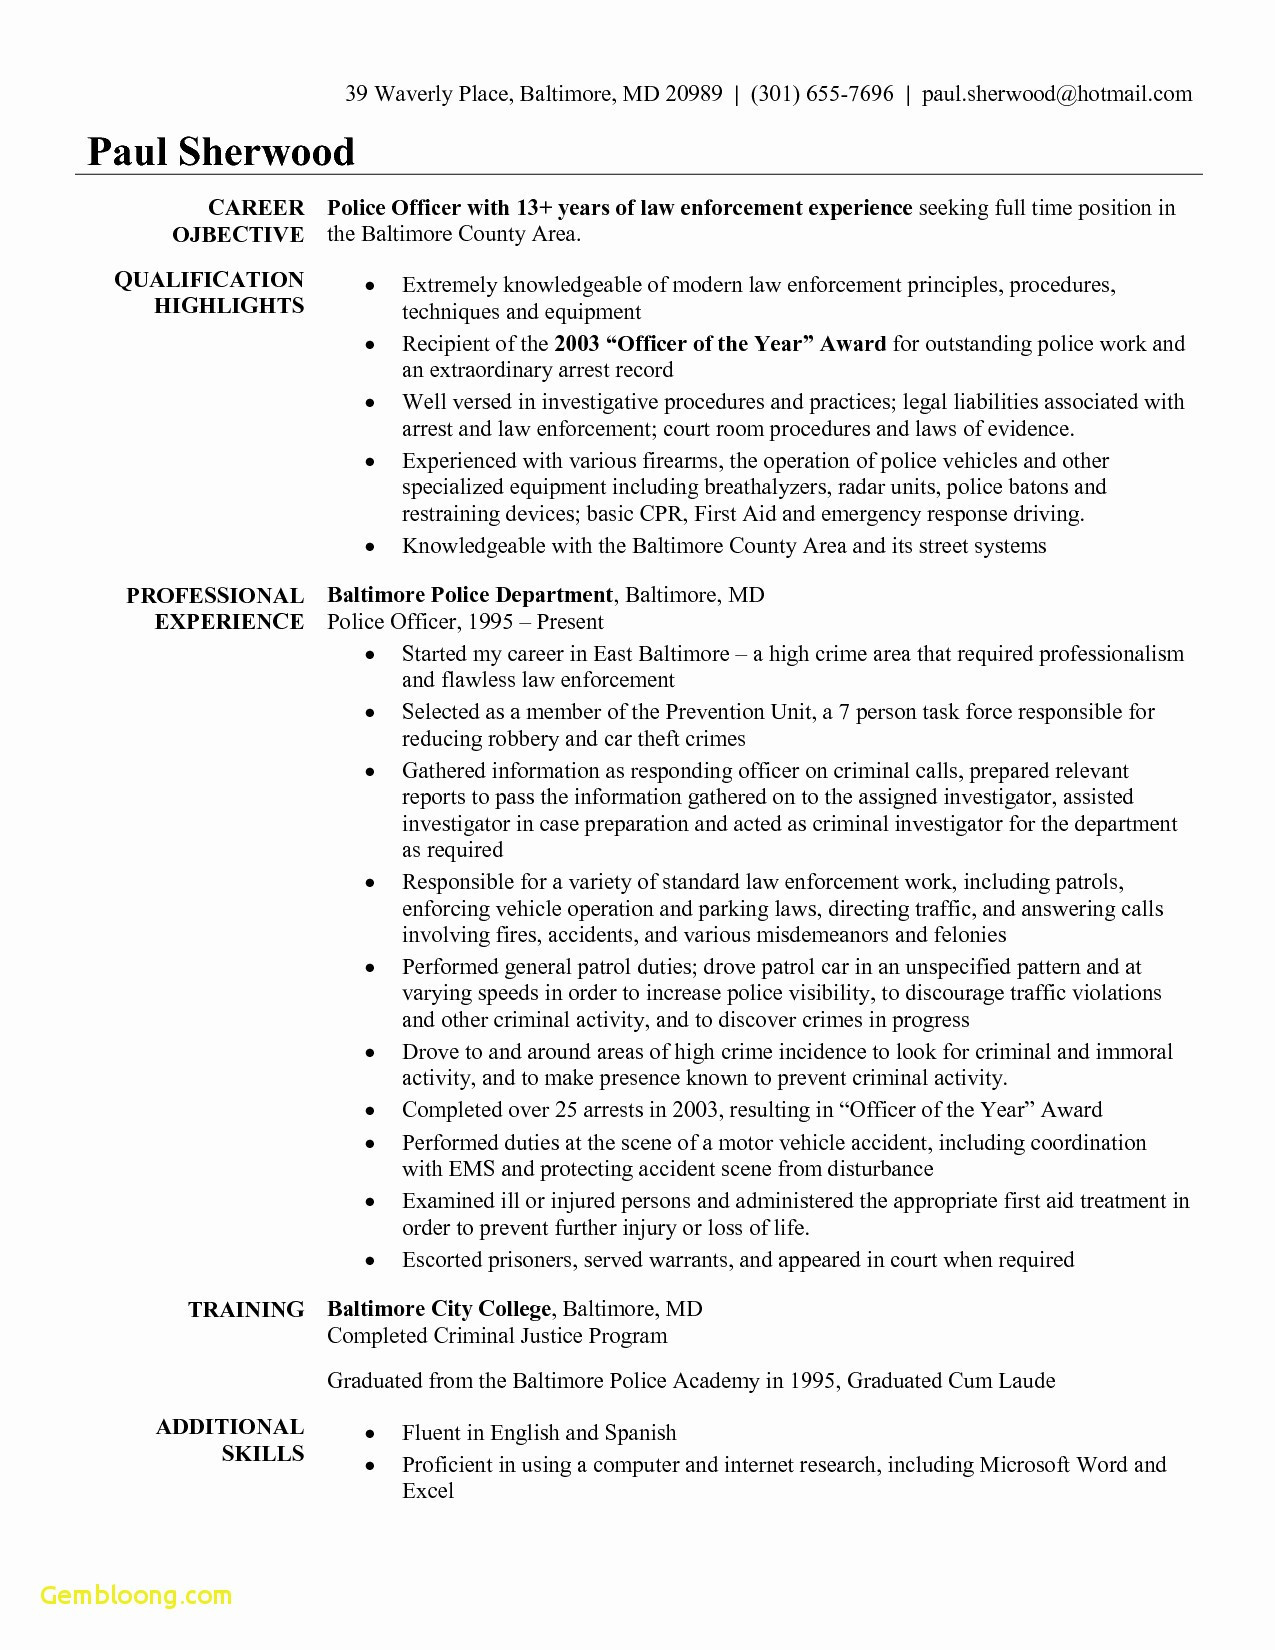 Law School Resumes - Incredible Law School Resume Template